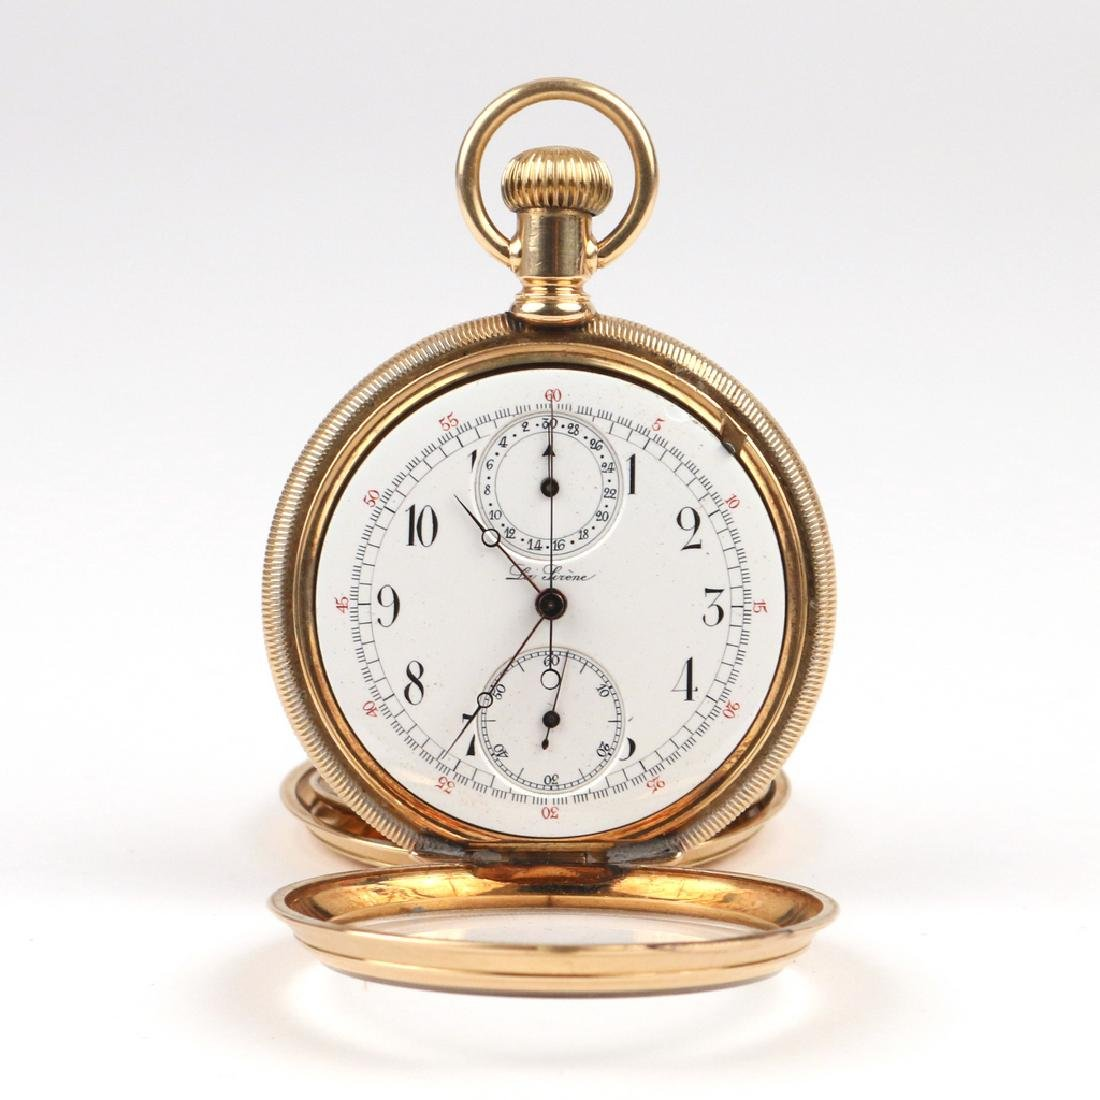 SWISS 'LA SIRENE' GOLD CHRONOGRAPH POCKETWATCH - 4